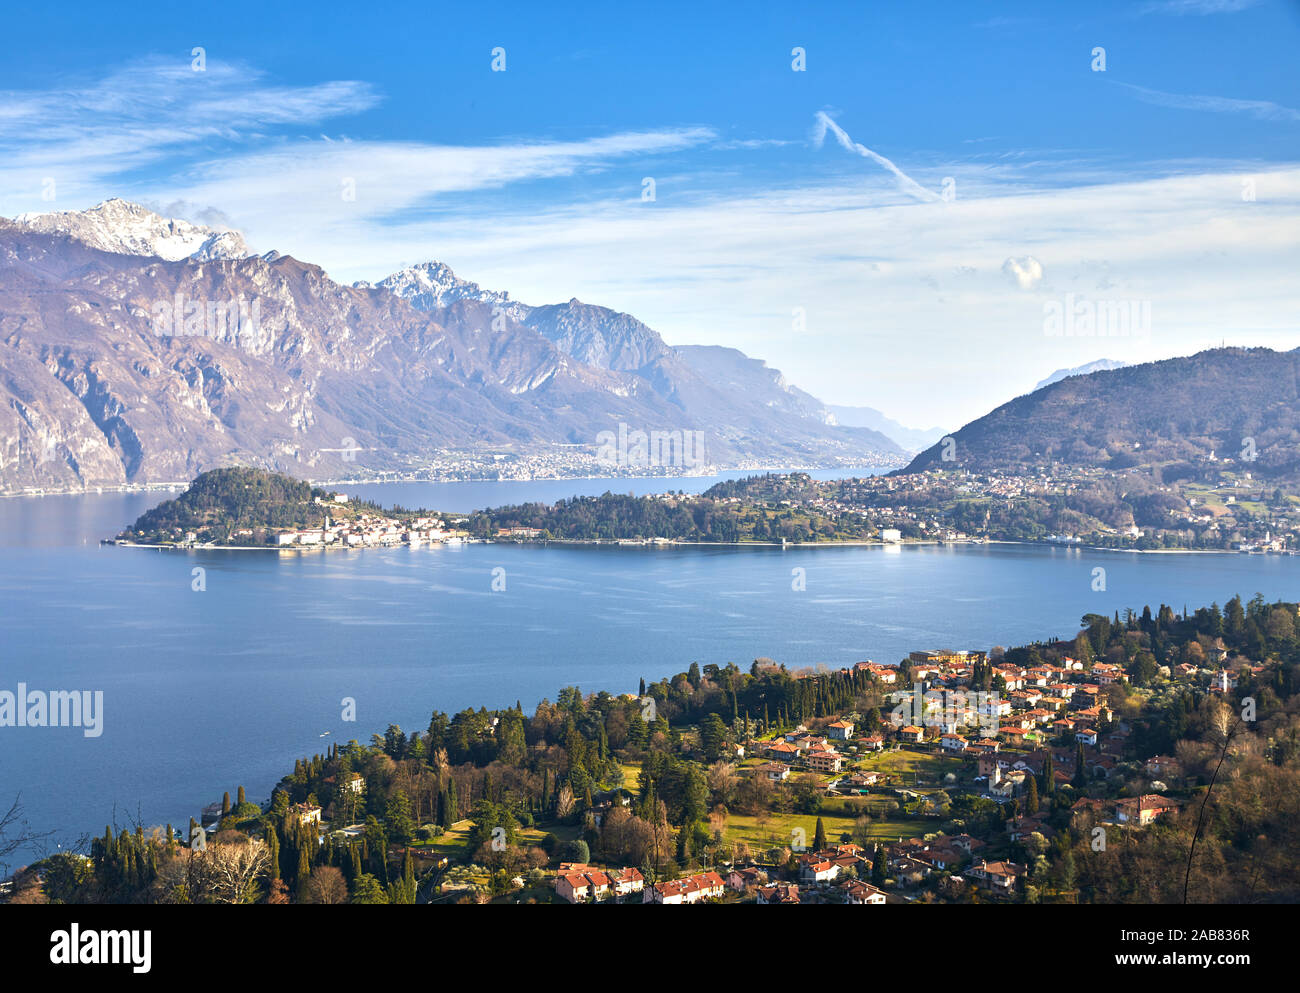 Bellagio and Varenna viewed from Griante on the western shore of Lake Como, Lombardy, Italian Lakes, Italy, Europe Stock Photo